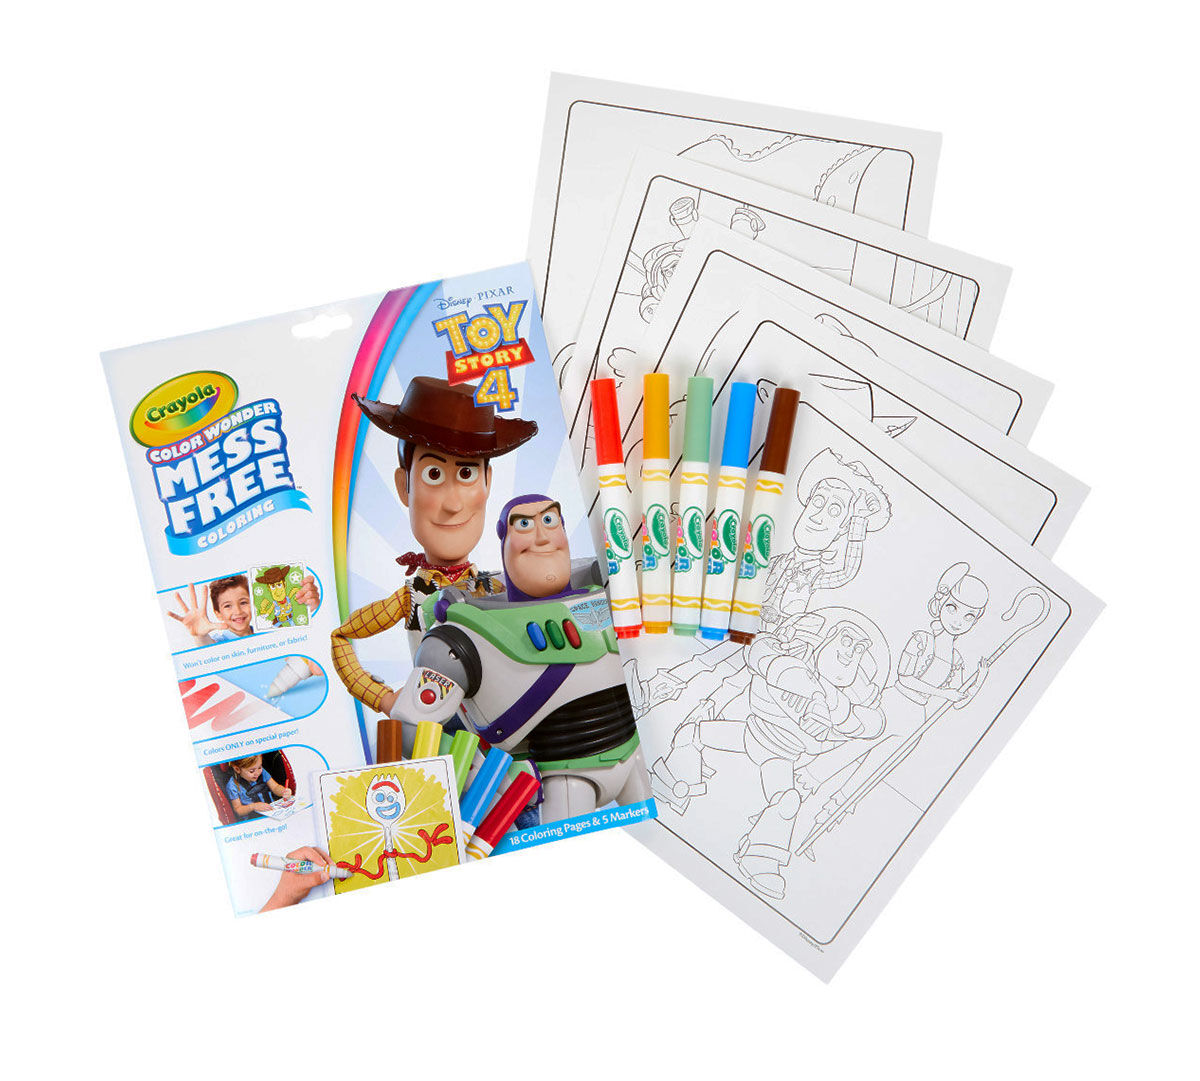 67 Top Crayola Giant Coloring Pages Toy Story 4 , Free HD Download